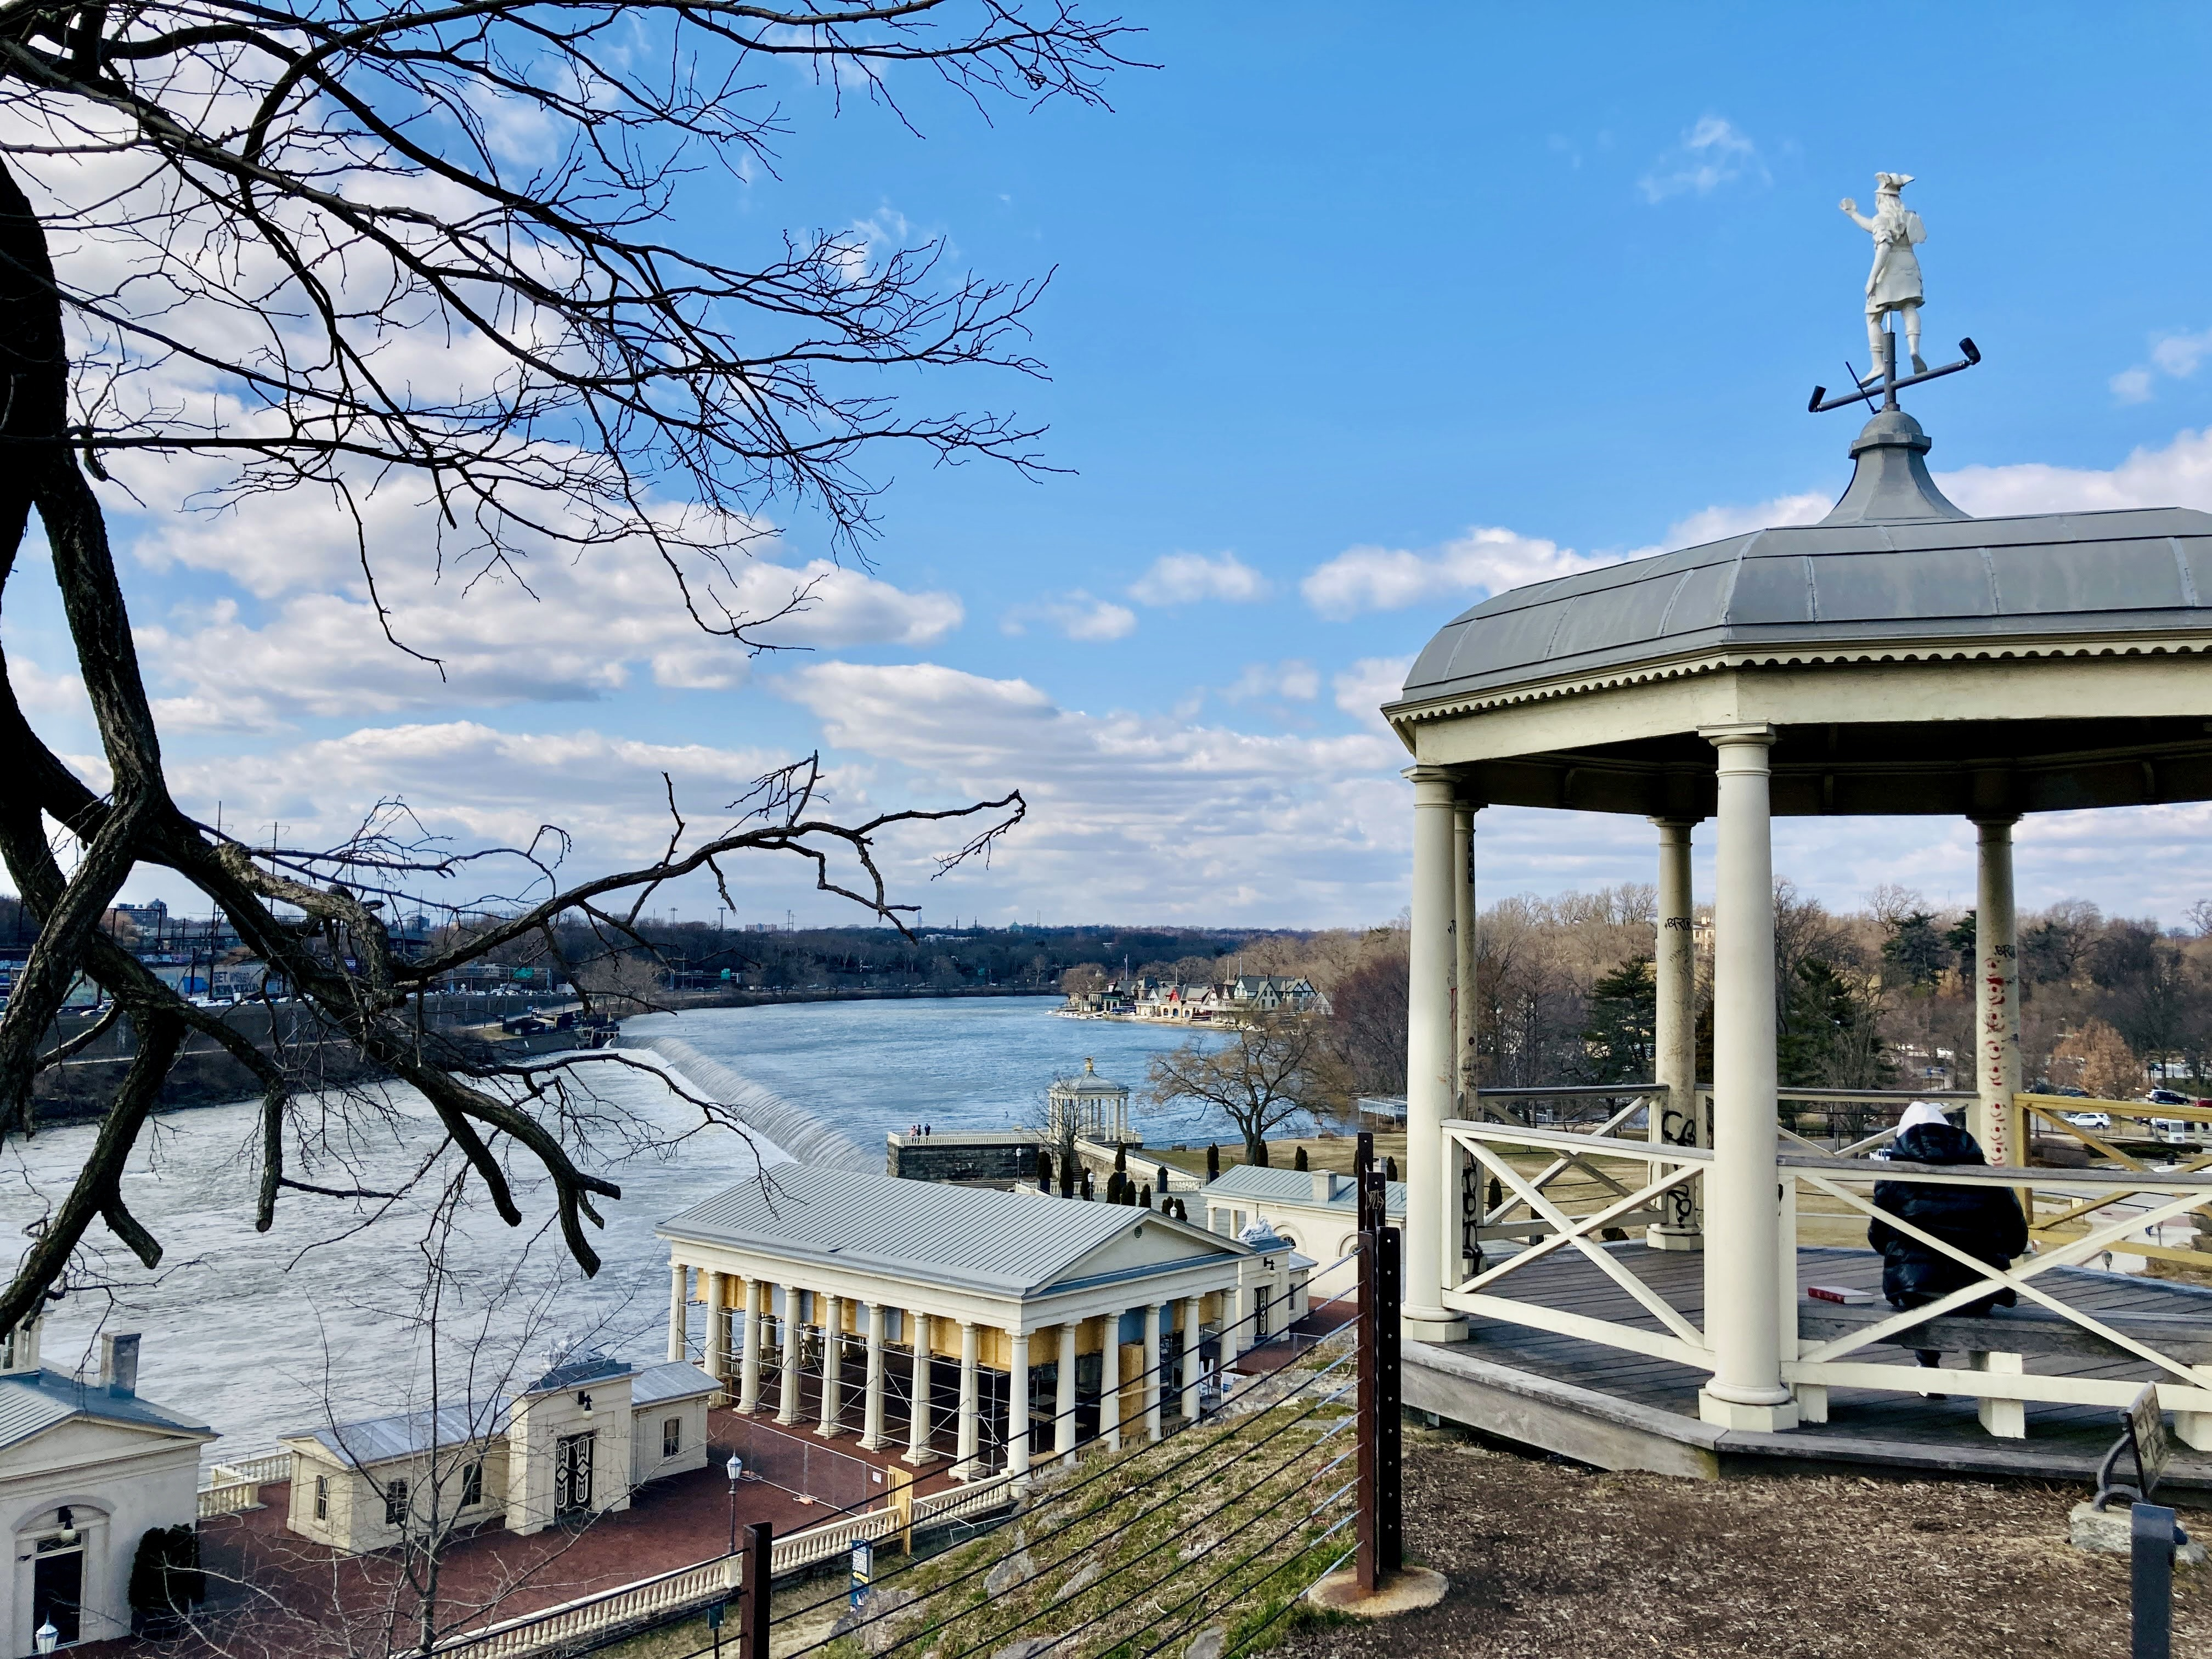 Waterworks and Schuylkill River in Fairmount, PA